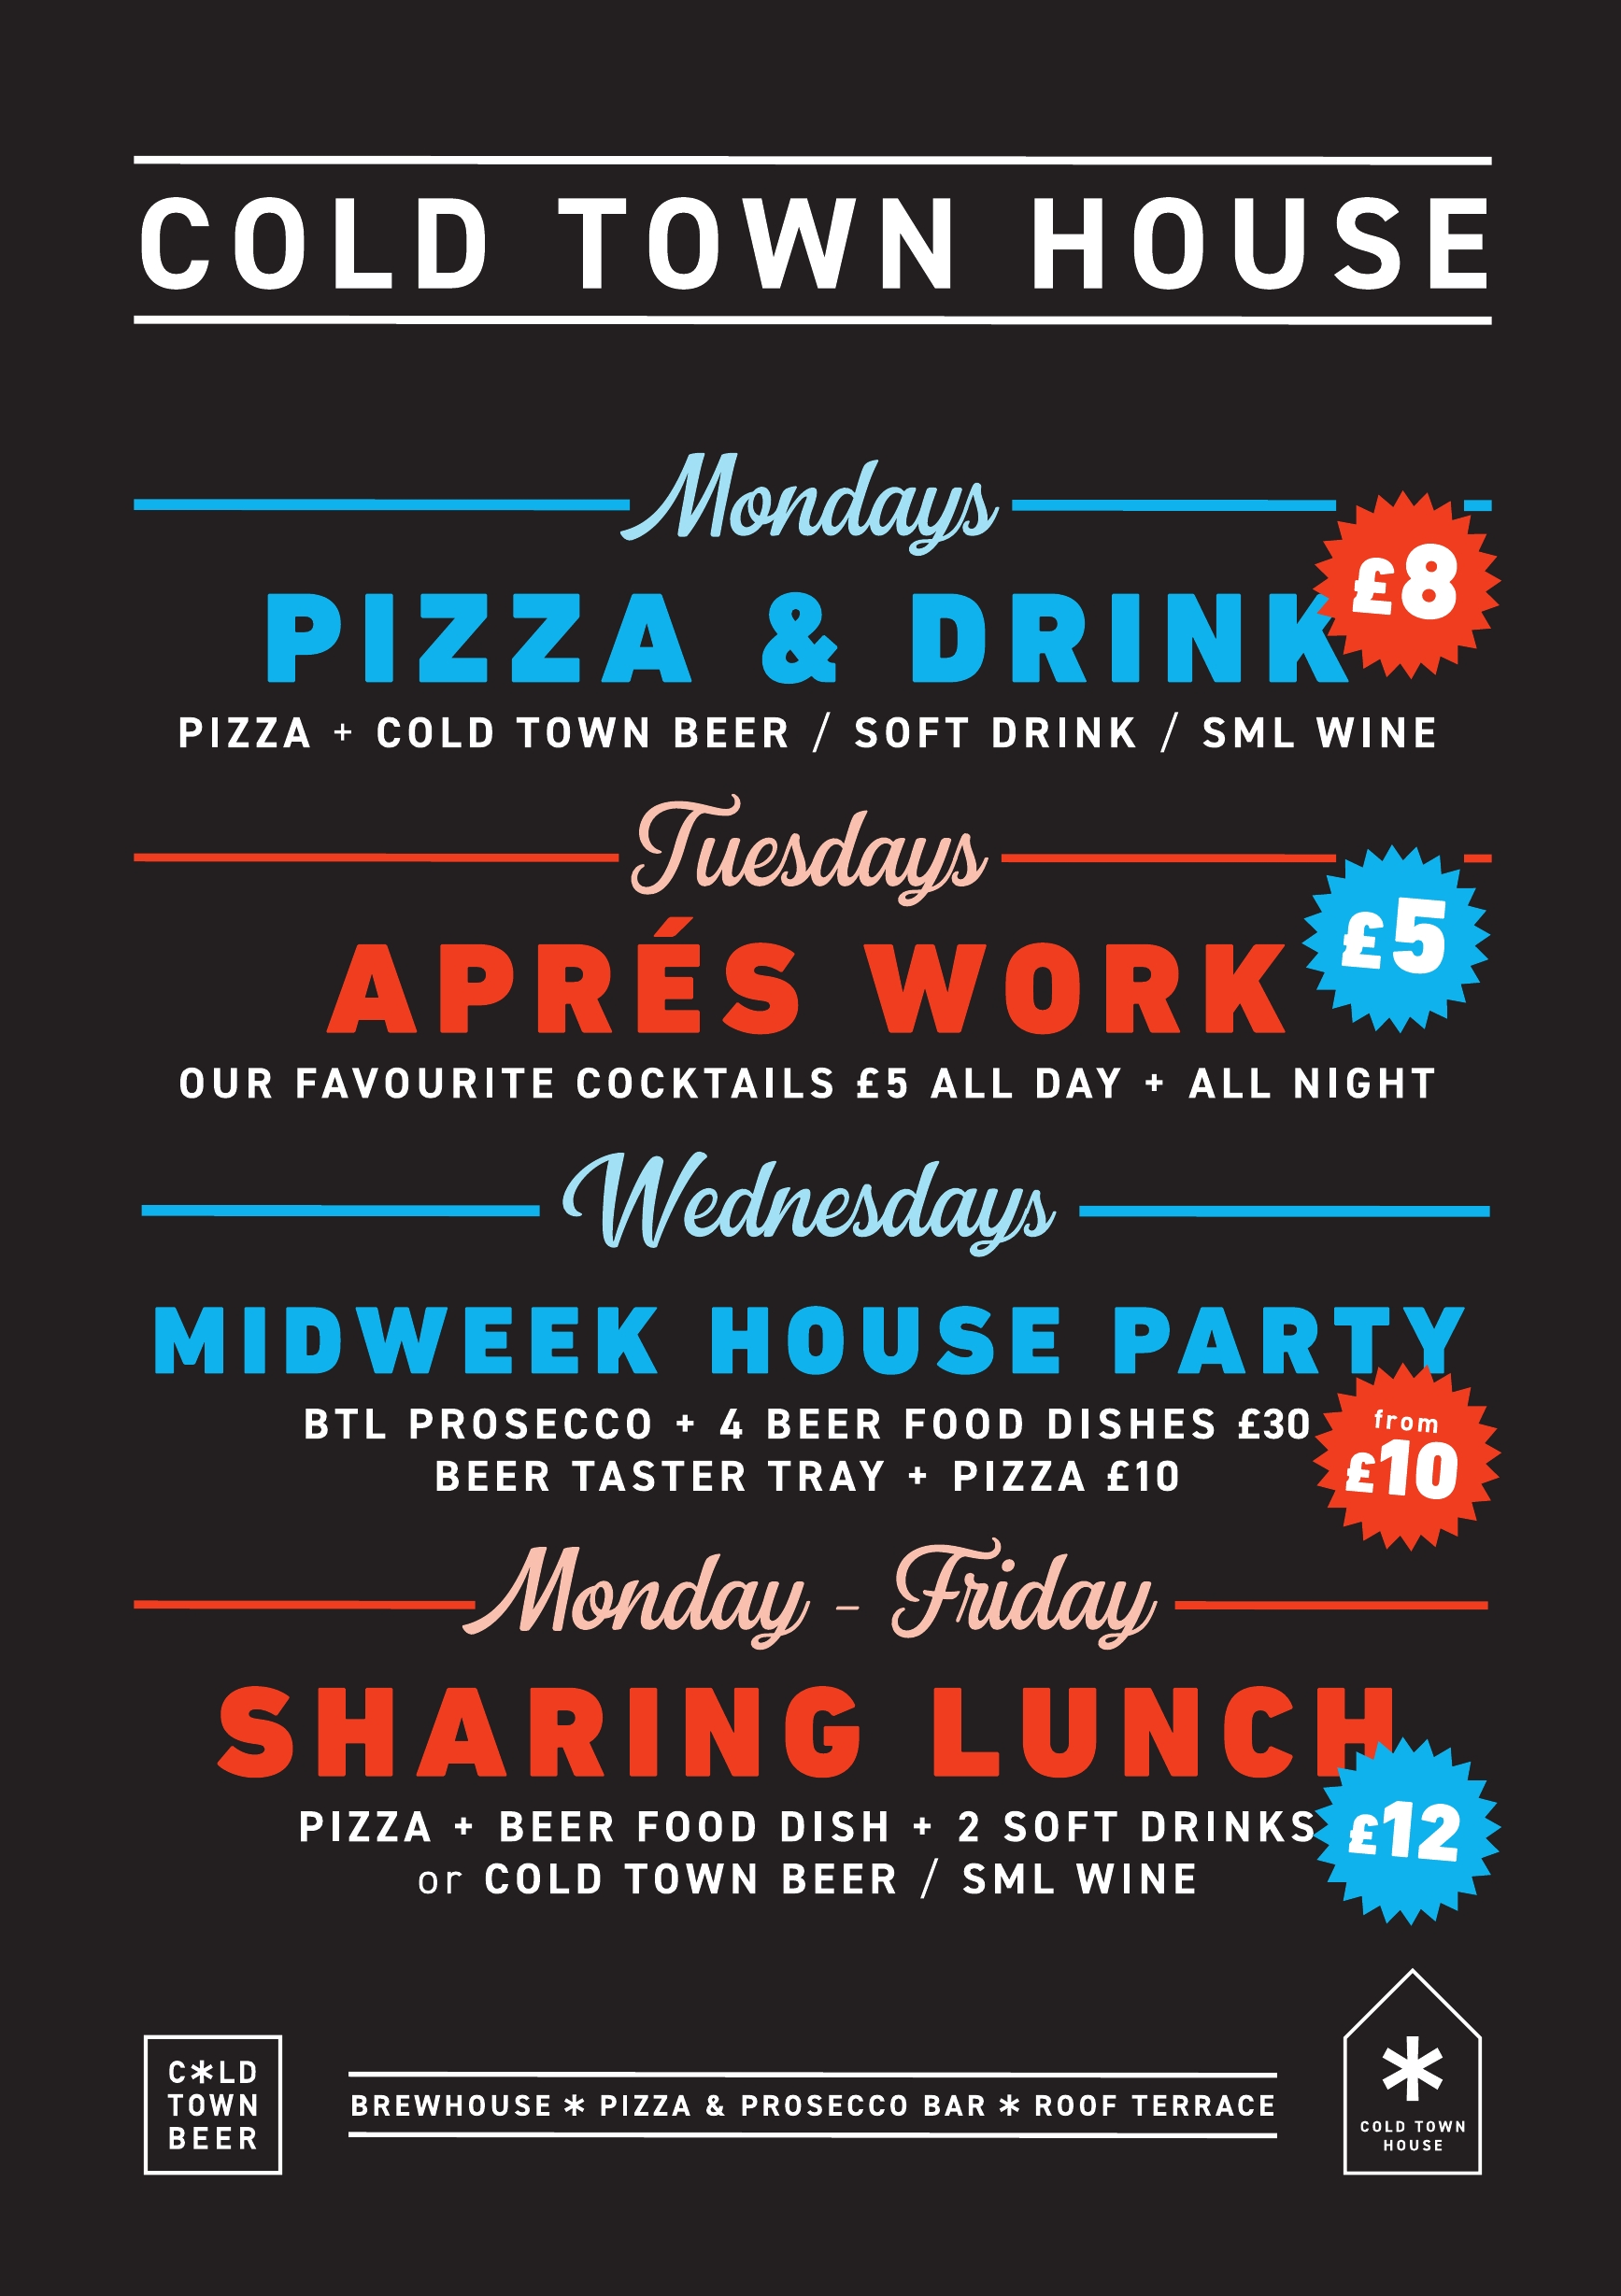 Daily Offers at Cold Town House